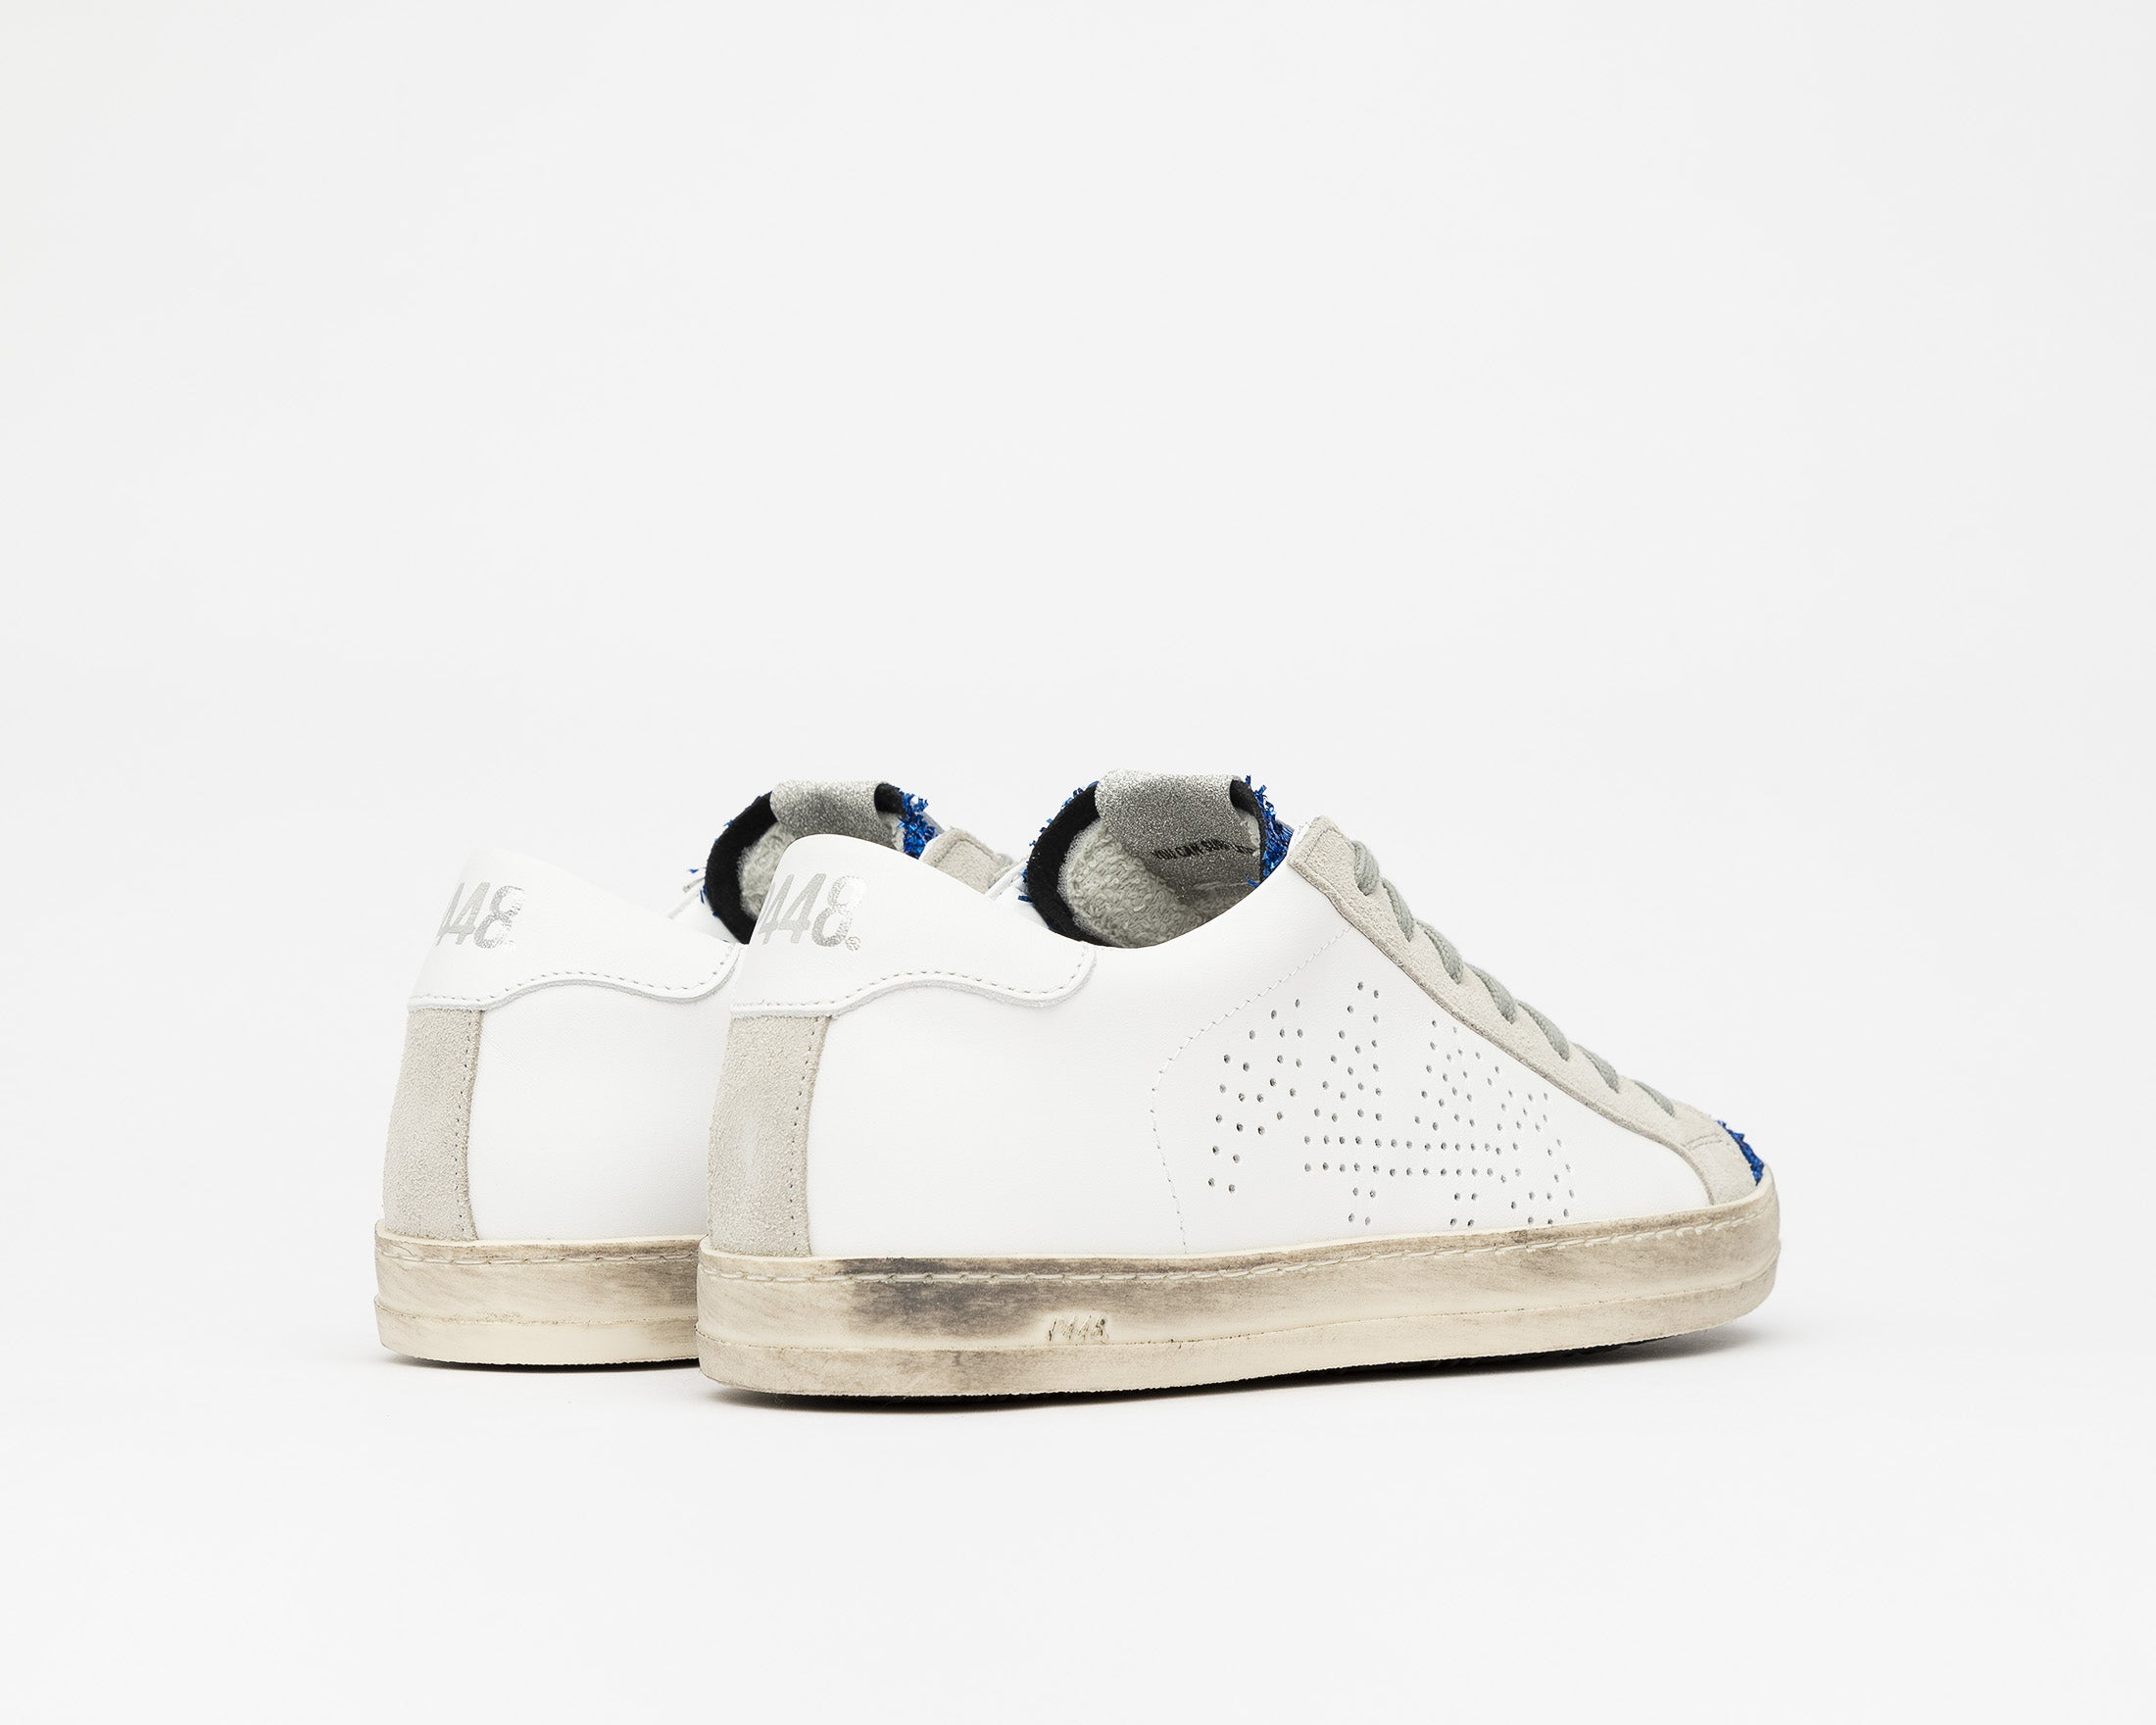 John Low-Top Sneaker in Royal/Lunar - Back